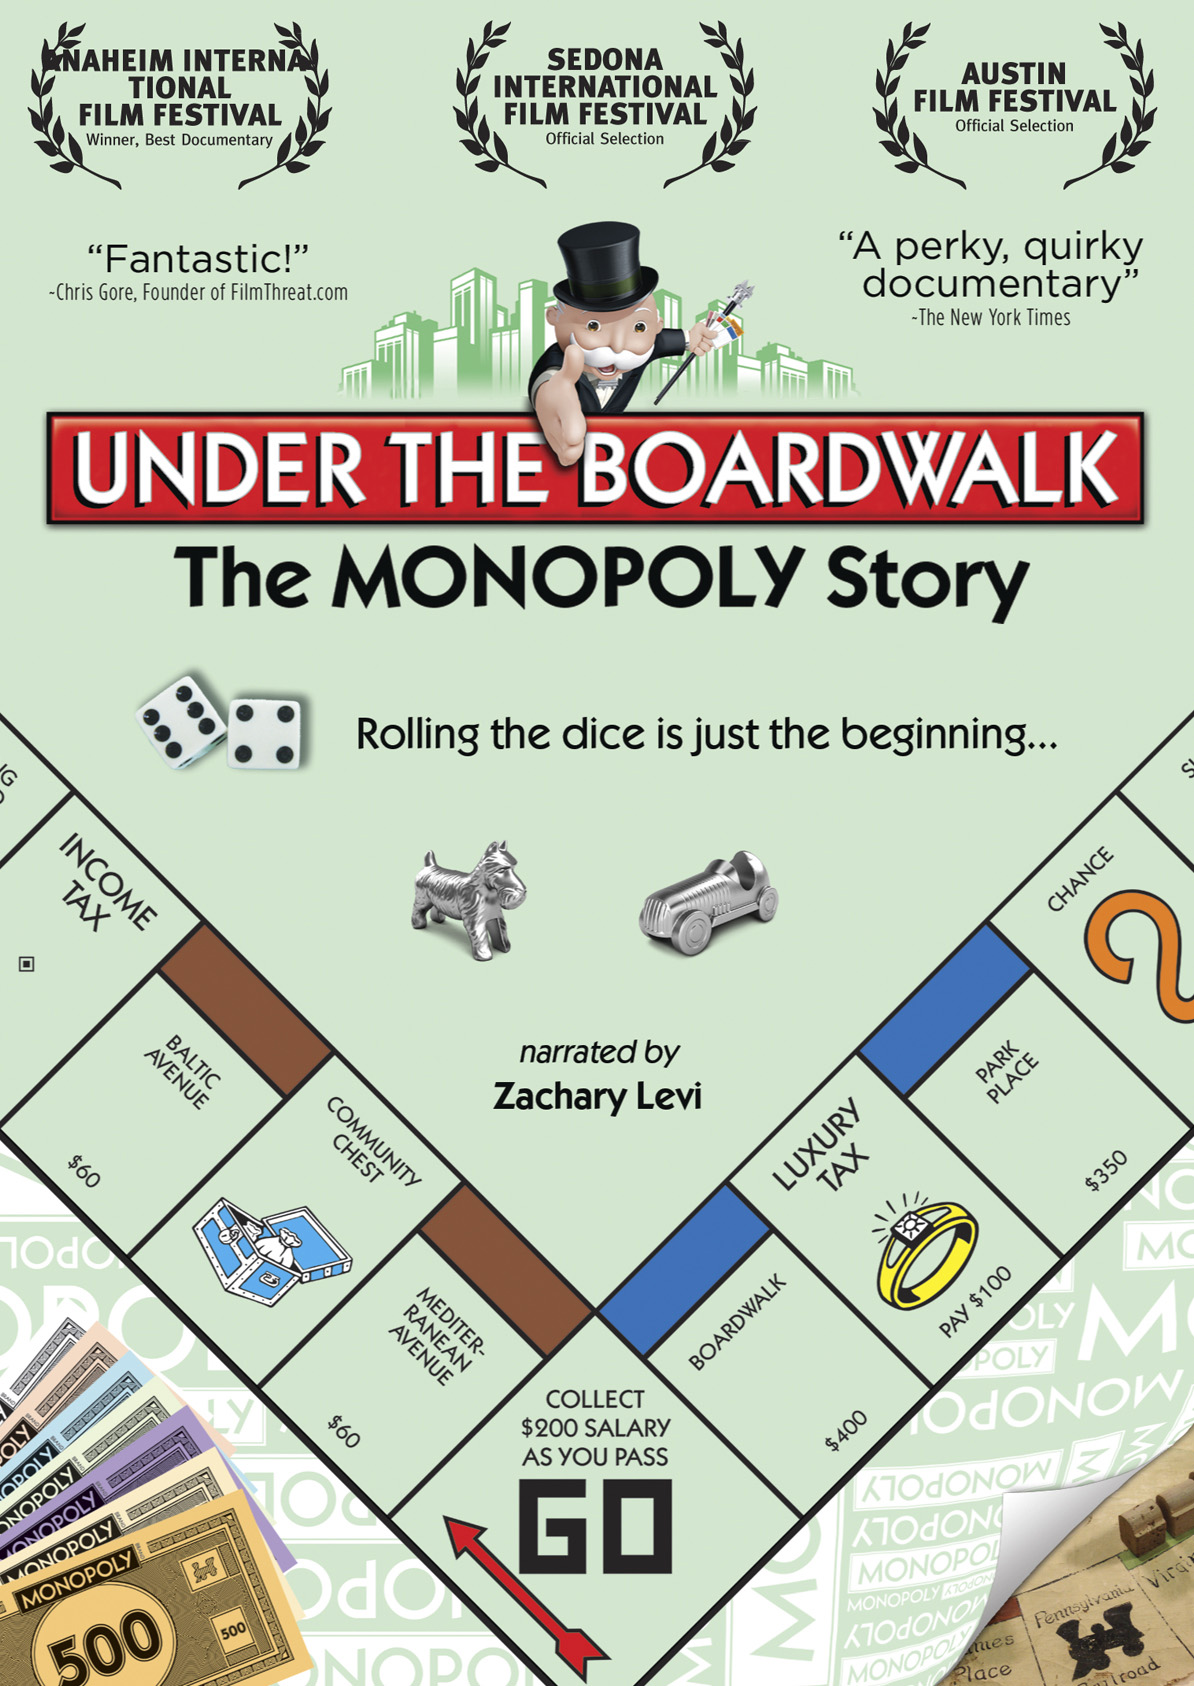 Monopoly Jail Clip Art Monopoly has been bringing